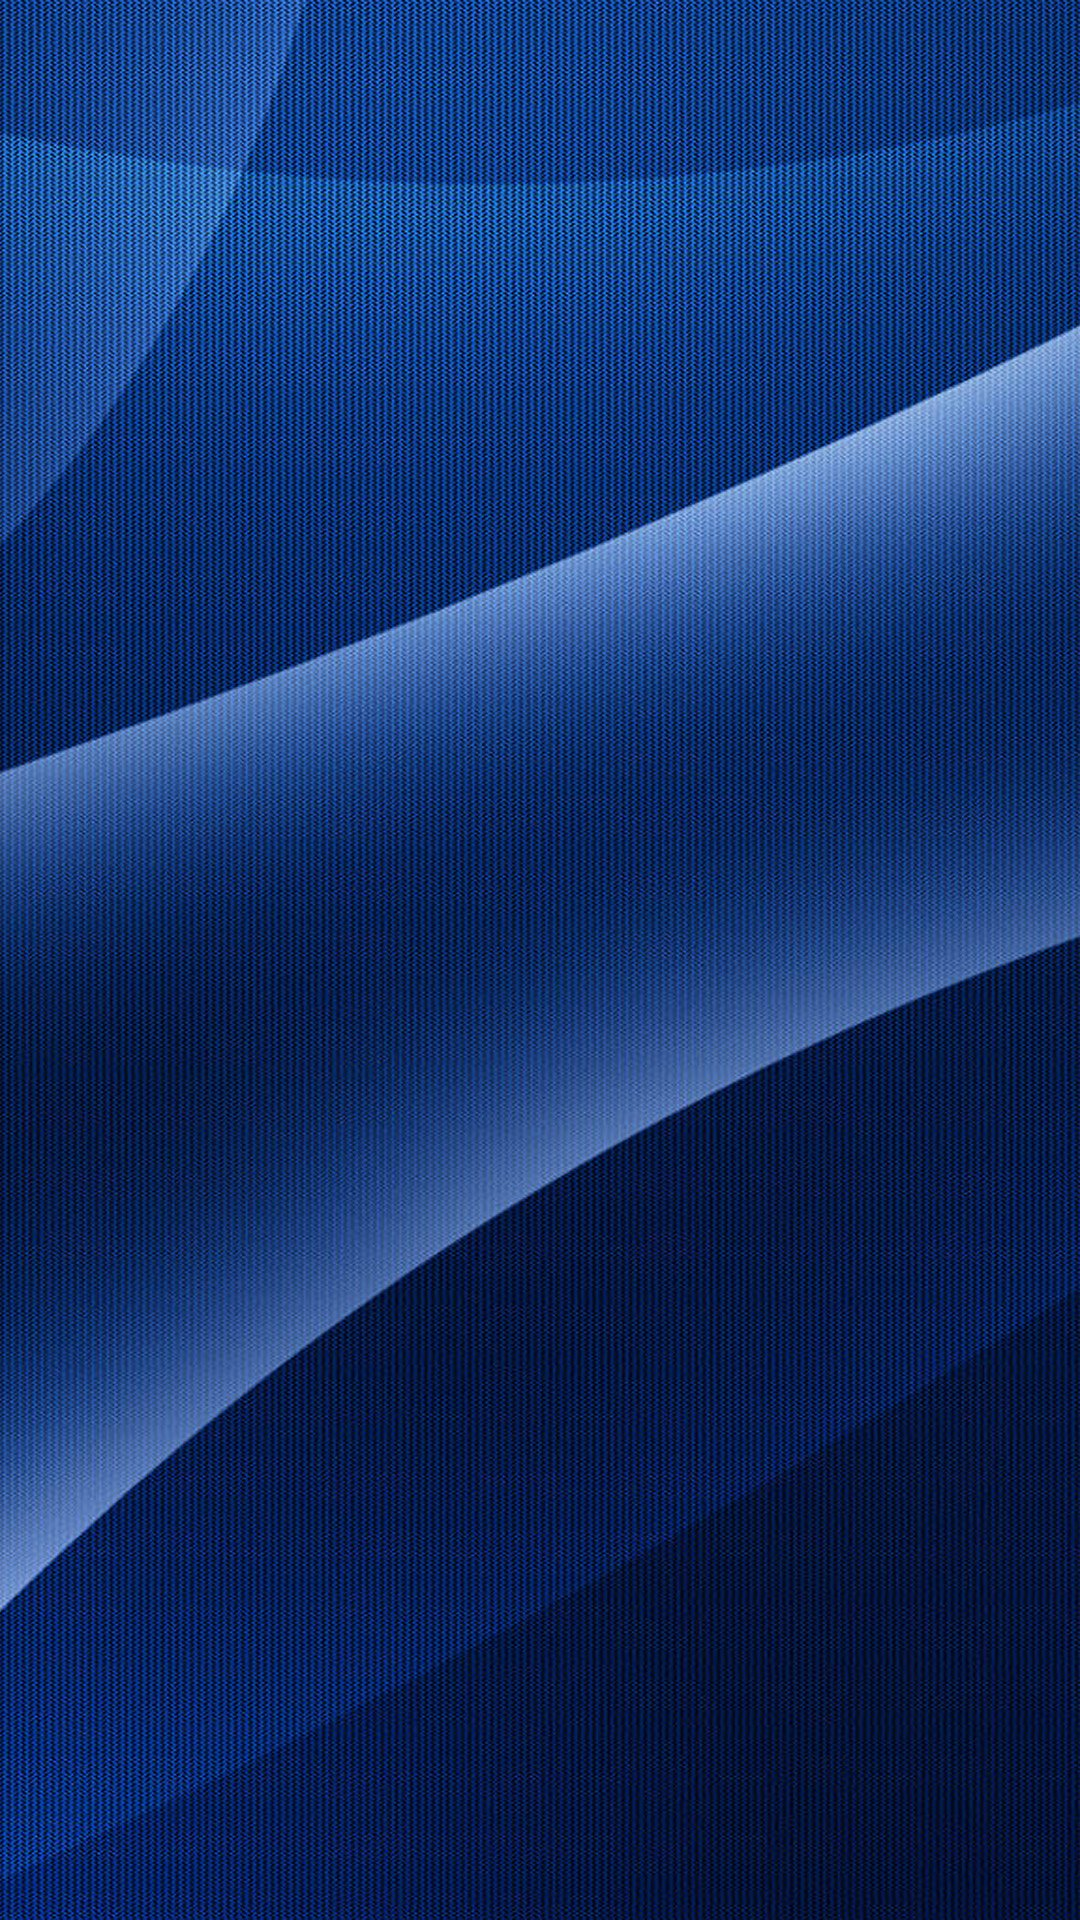 Background Samsung Galaxy S5 Wallpapers   Part 10 1080x1920